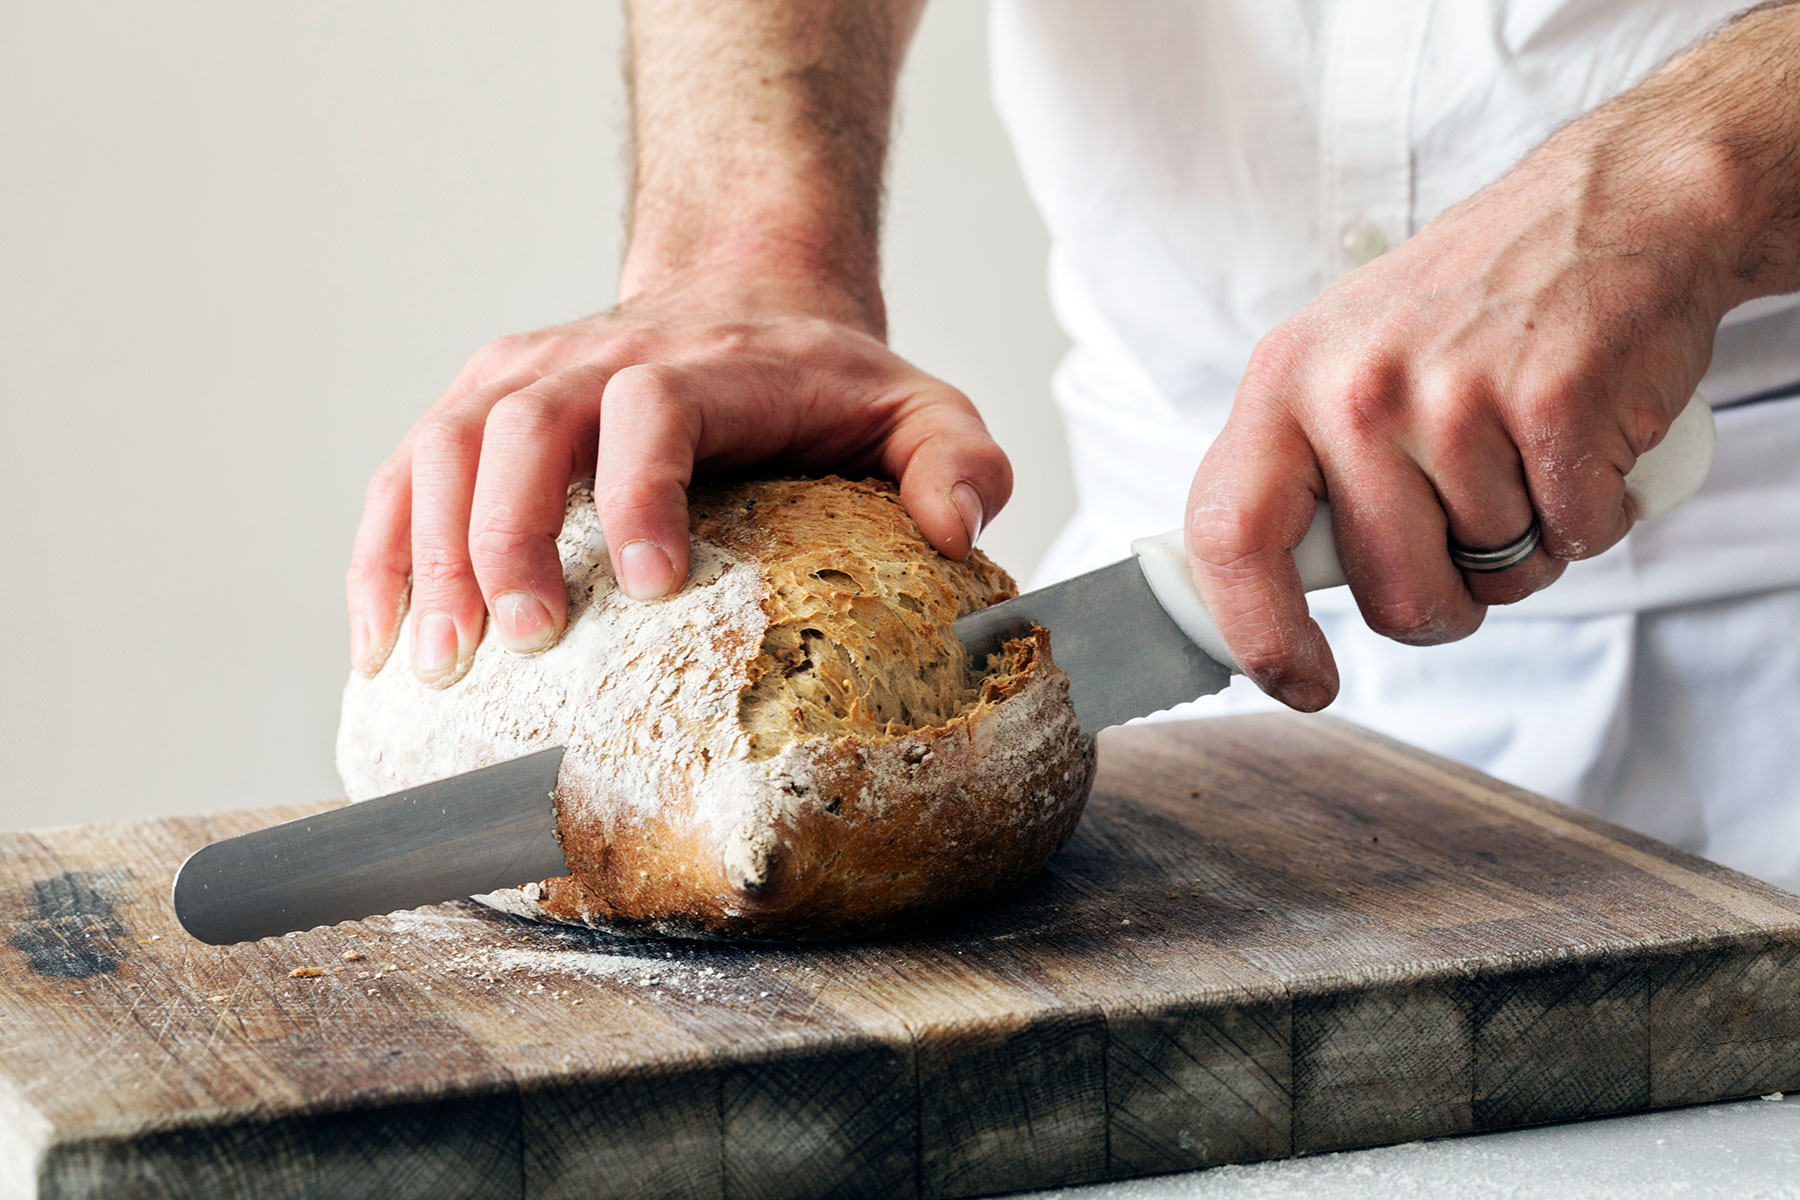 Slicing Bread on Cutting Board